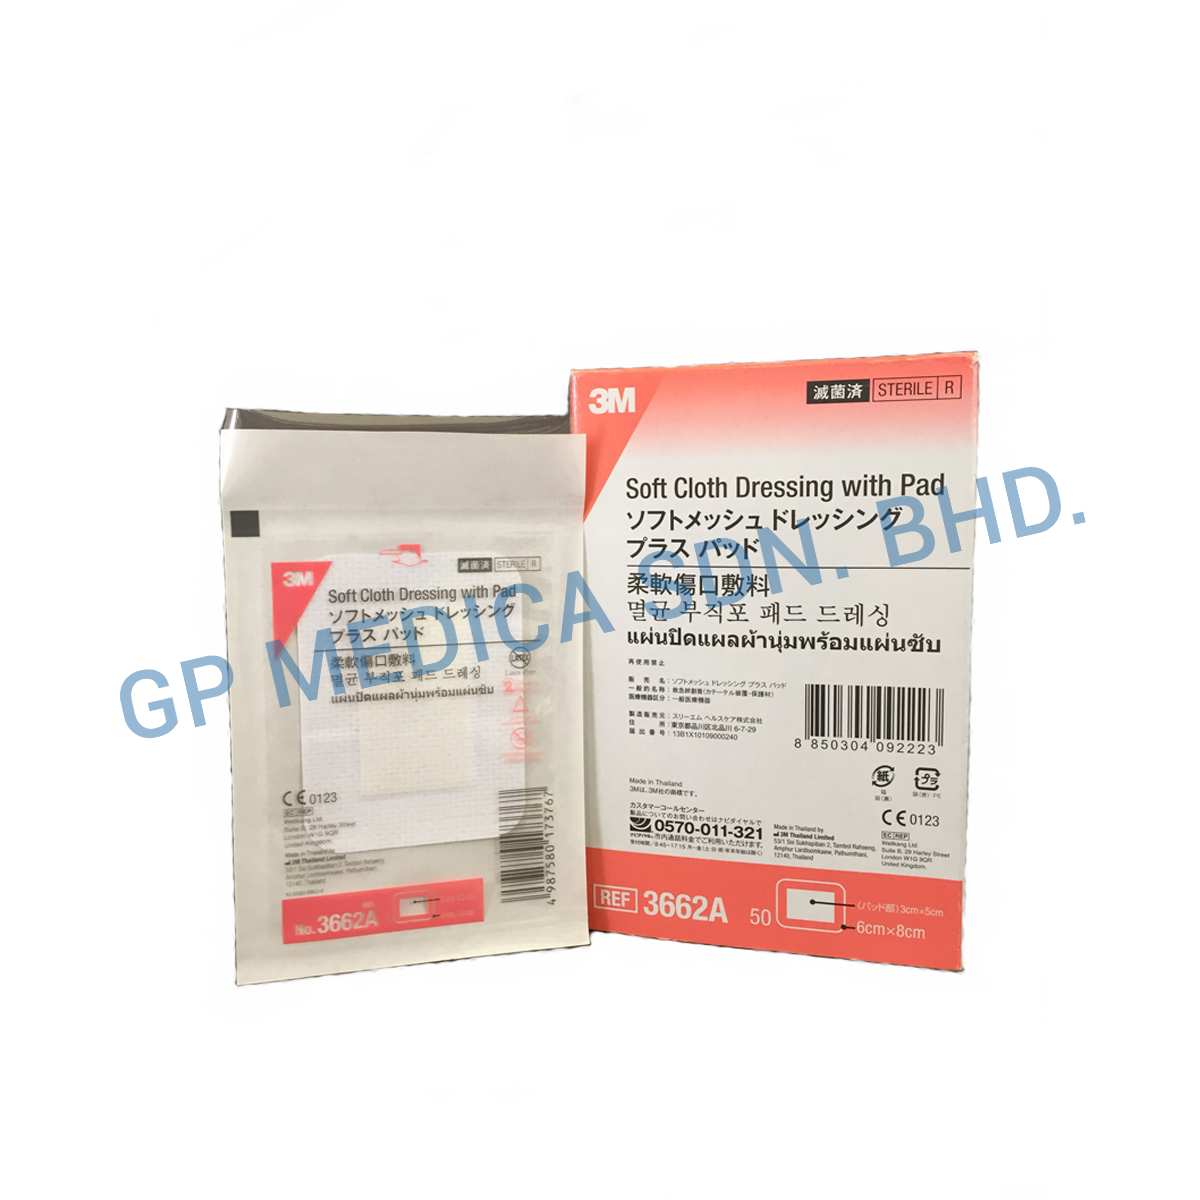 3M Soft Cloth Dressing With Pad 3662A